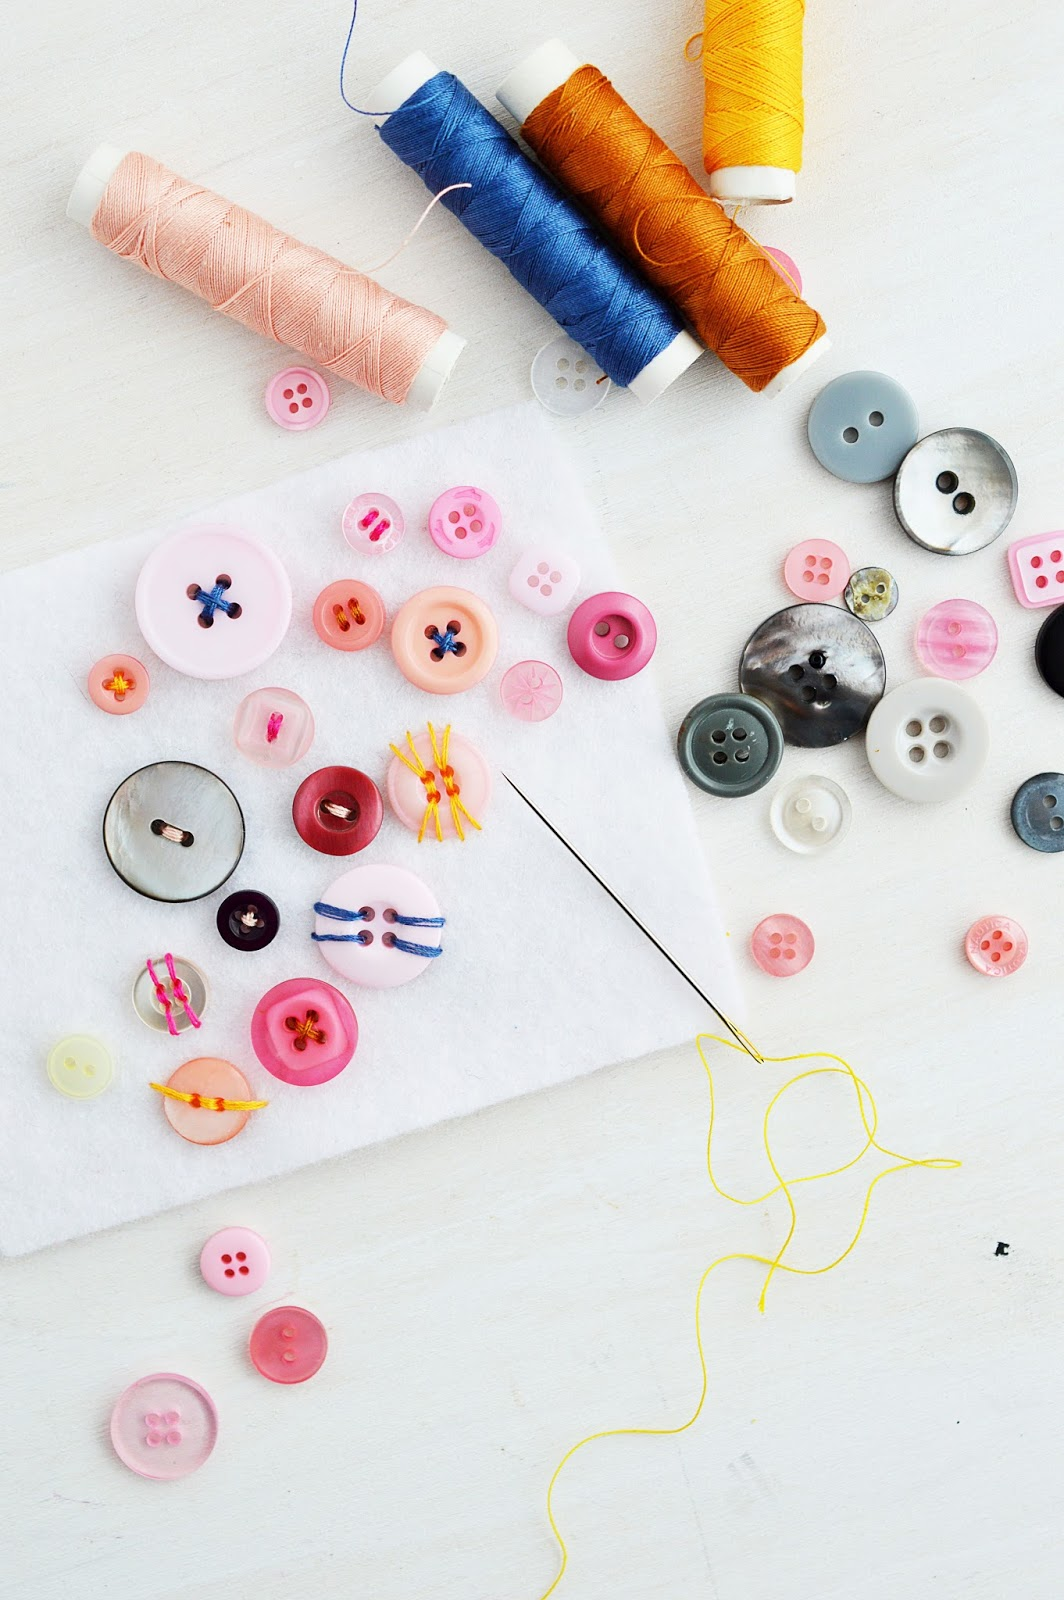 How To Sew On A Button | Motte's Blog